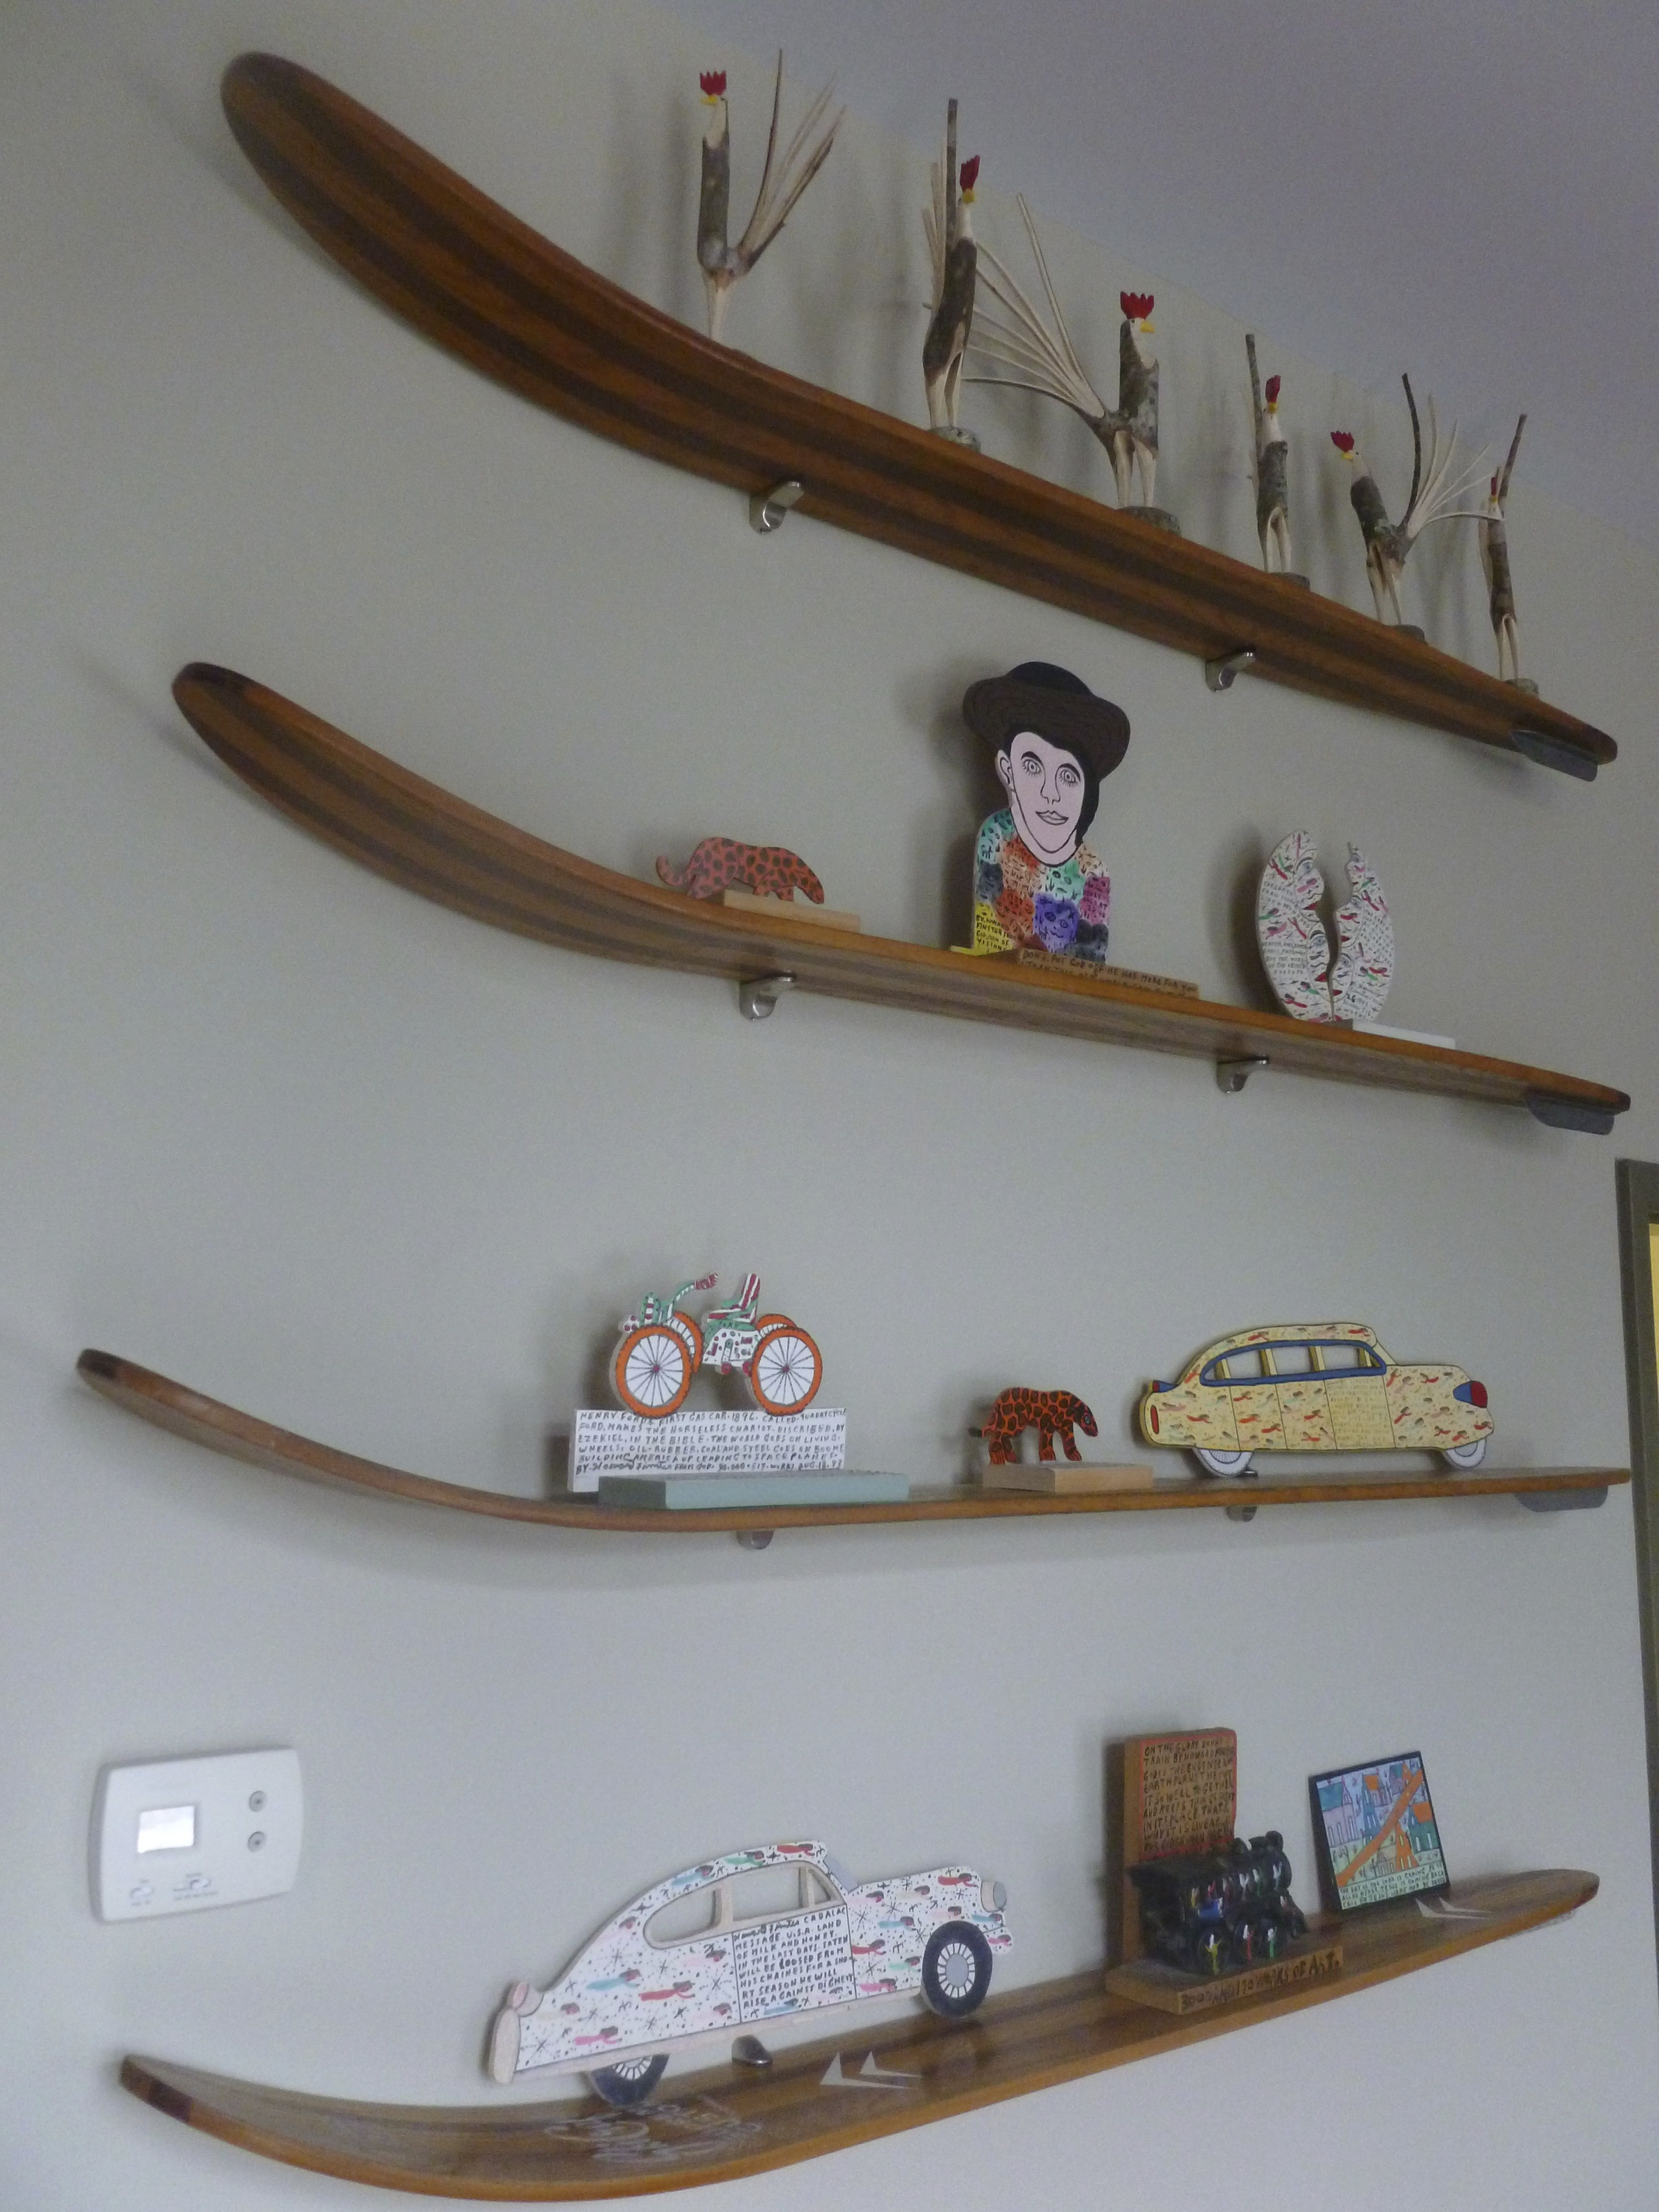 Howard finster and minnie adkins folk art displayed on for Snowboard decor